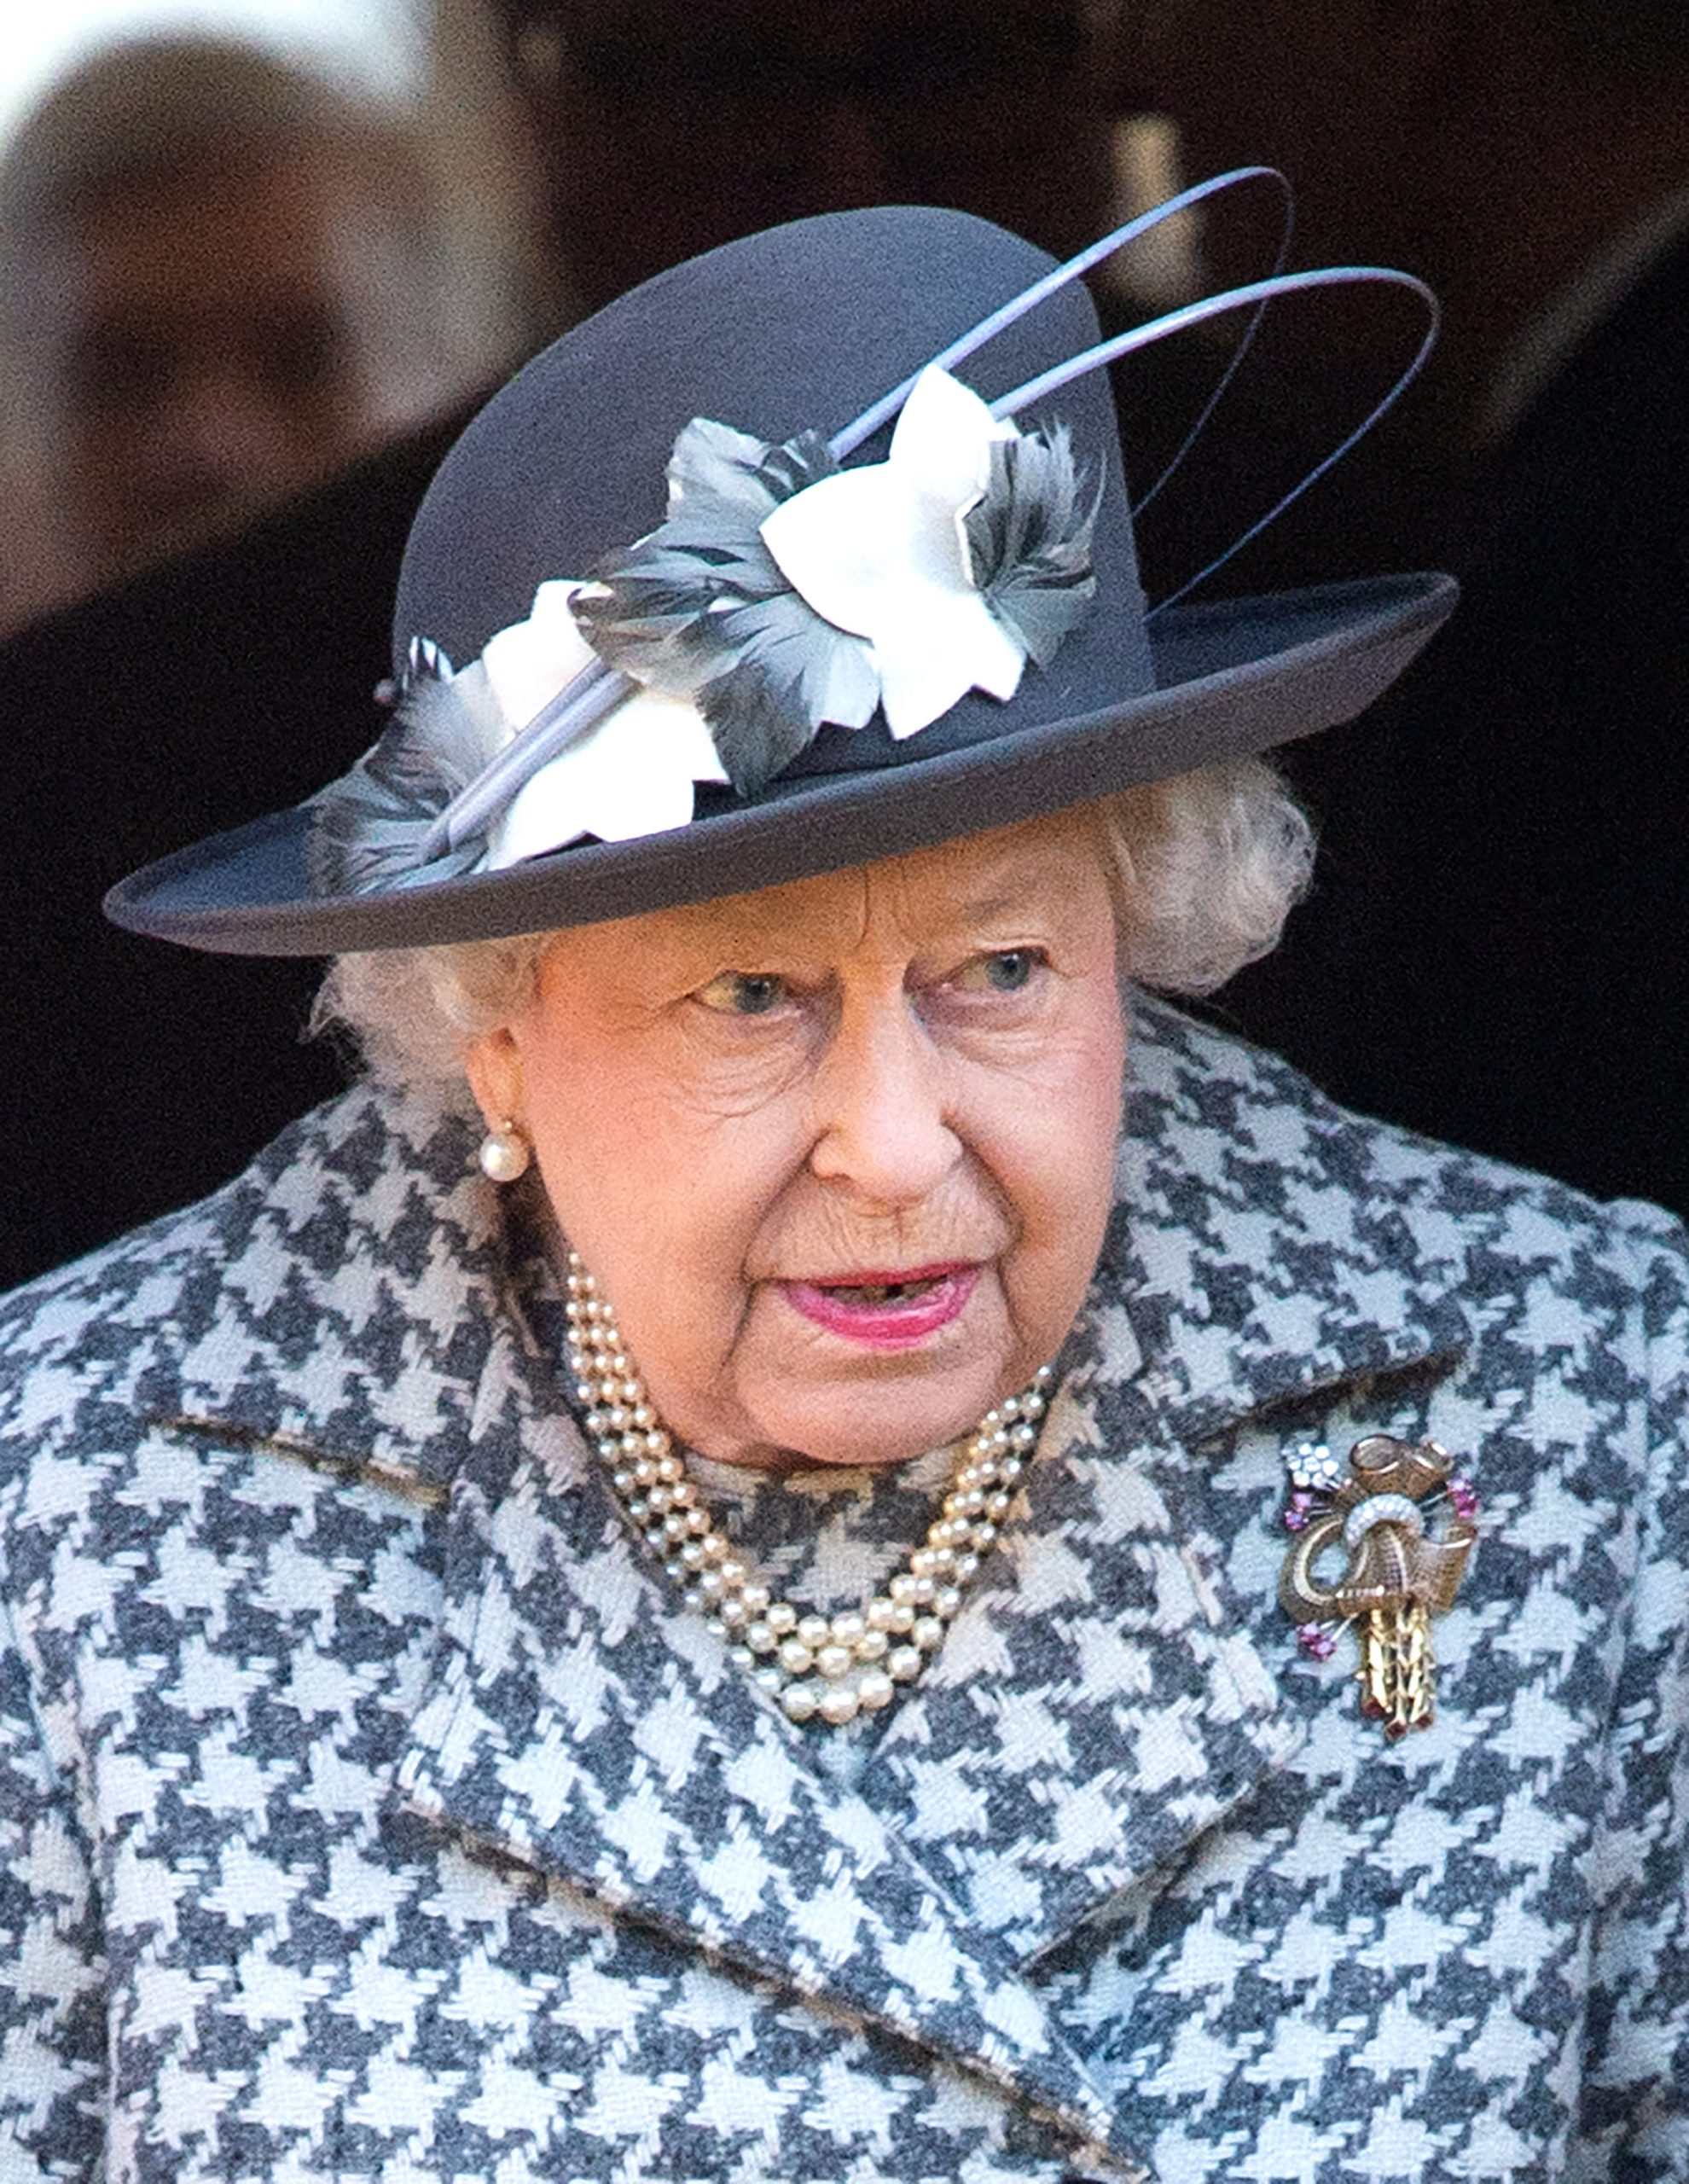 The Queen. Mayor forced to apologise for Boris Johnson 'deserves this' coronavirus comment